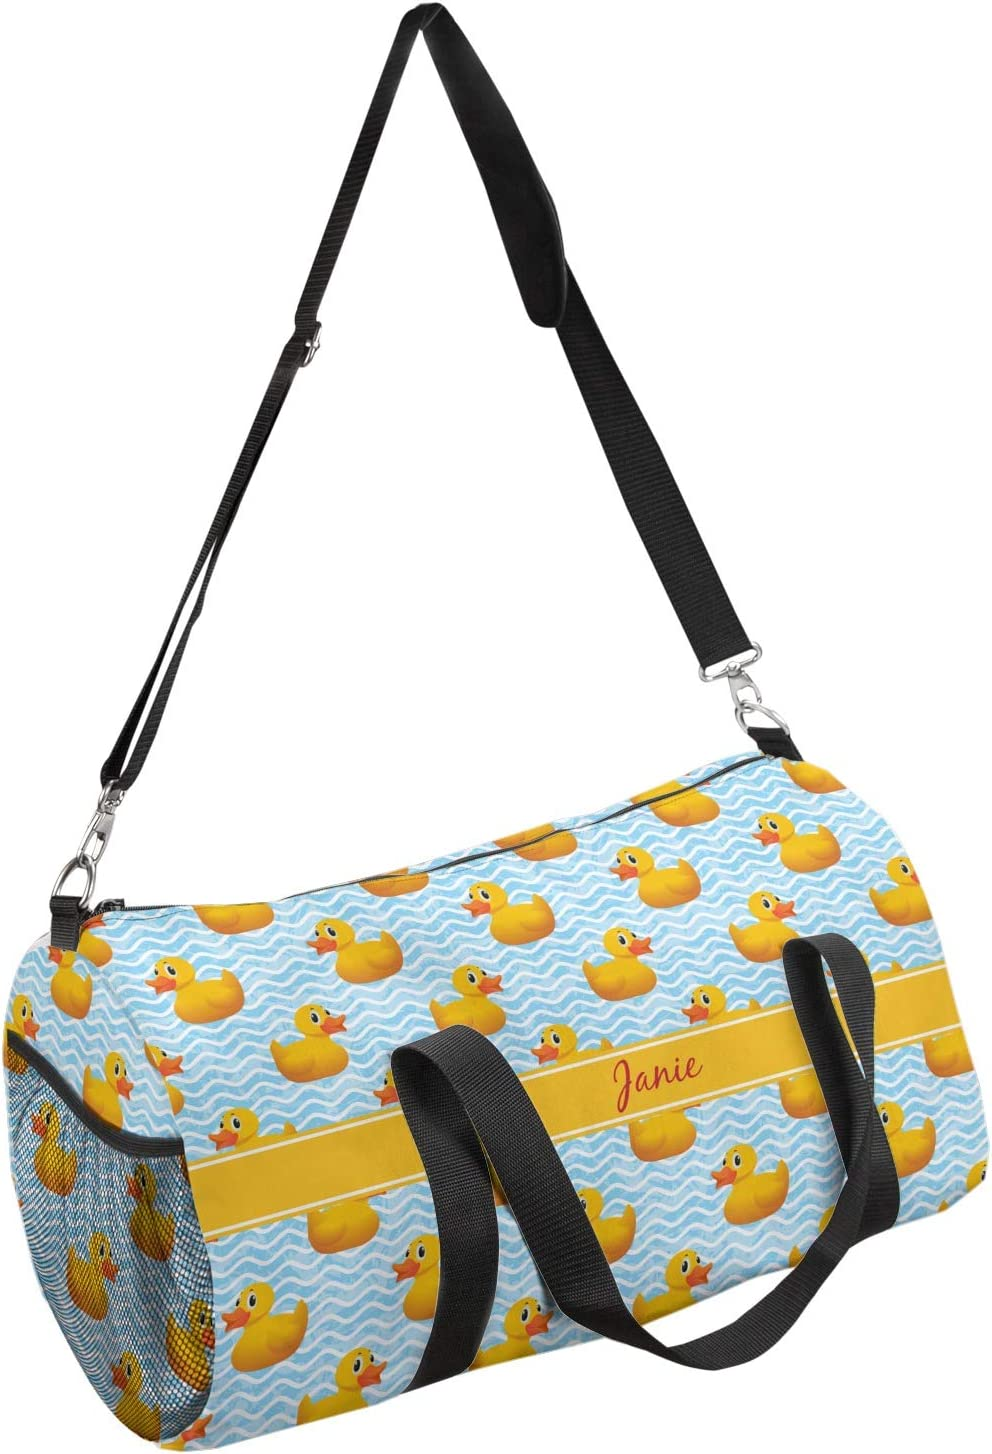 Personalized YouCustomizeIt Rubber Duckie Duffel Bag